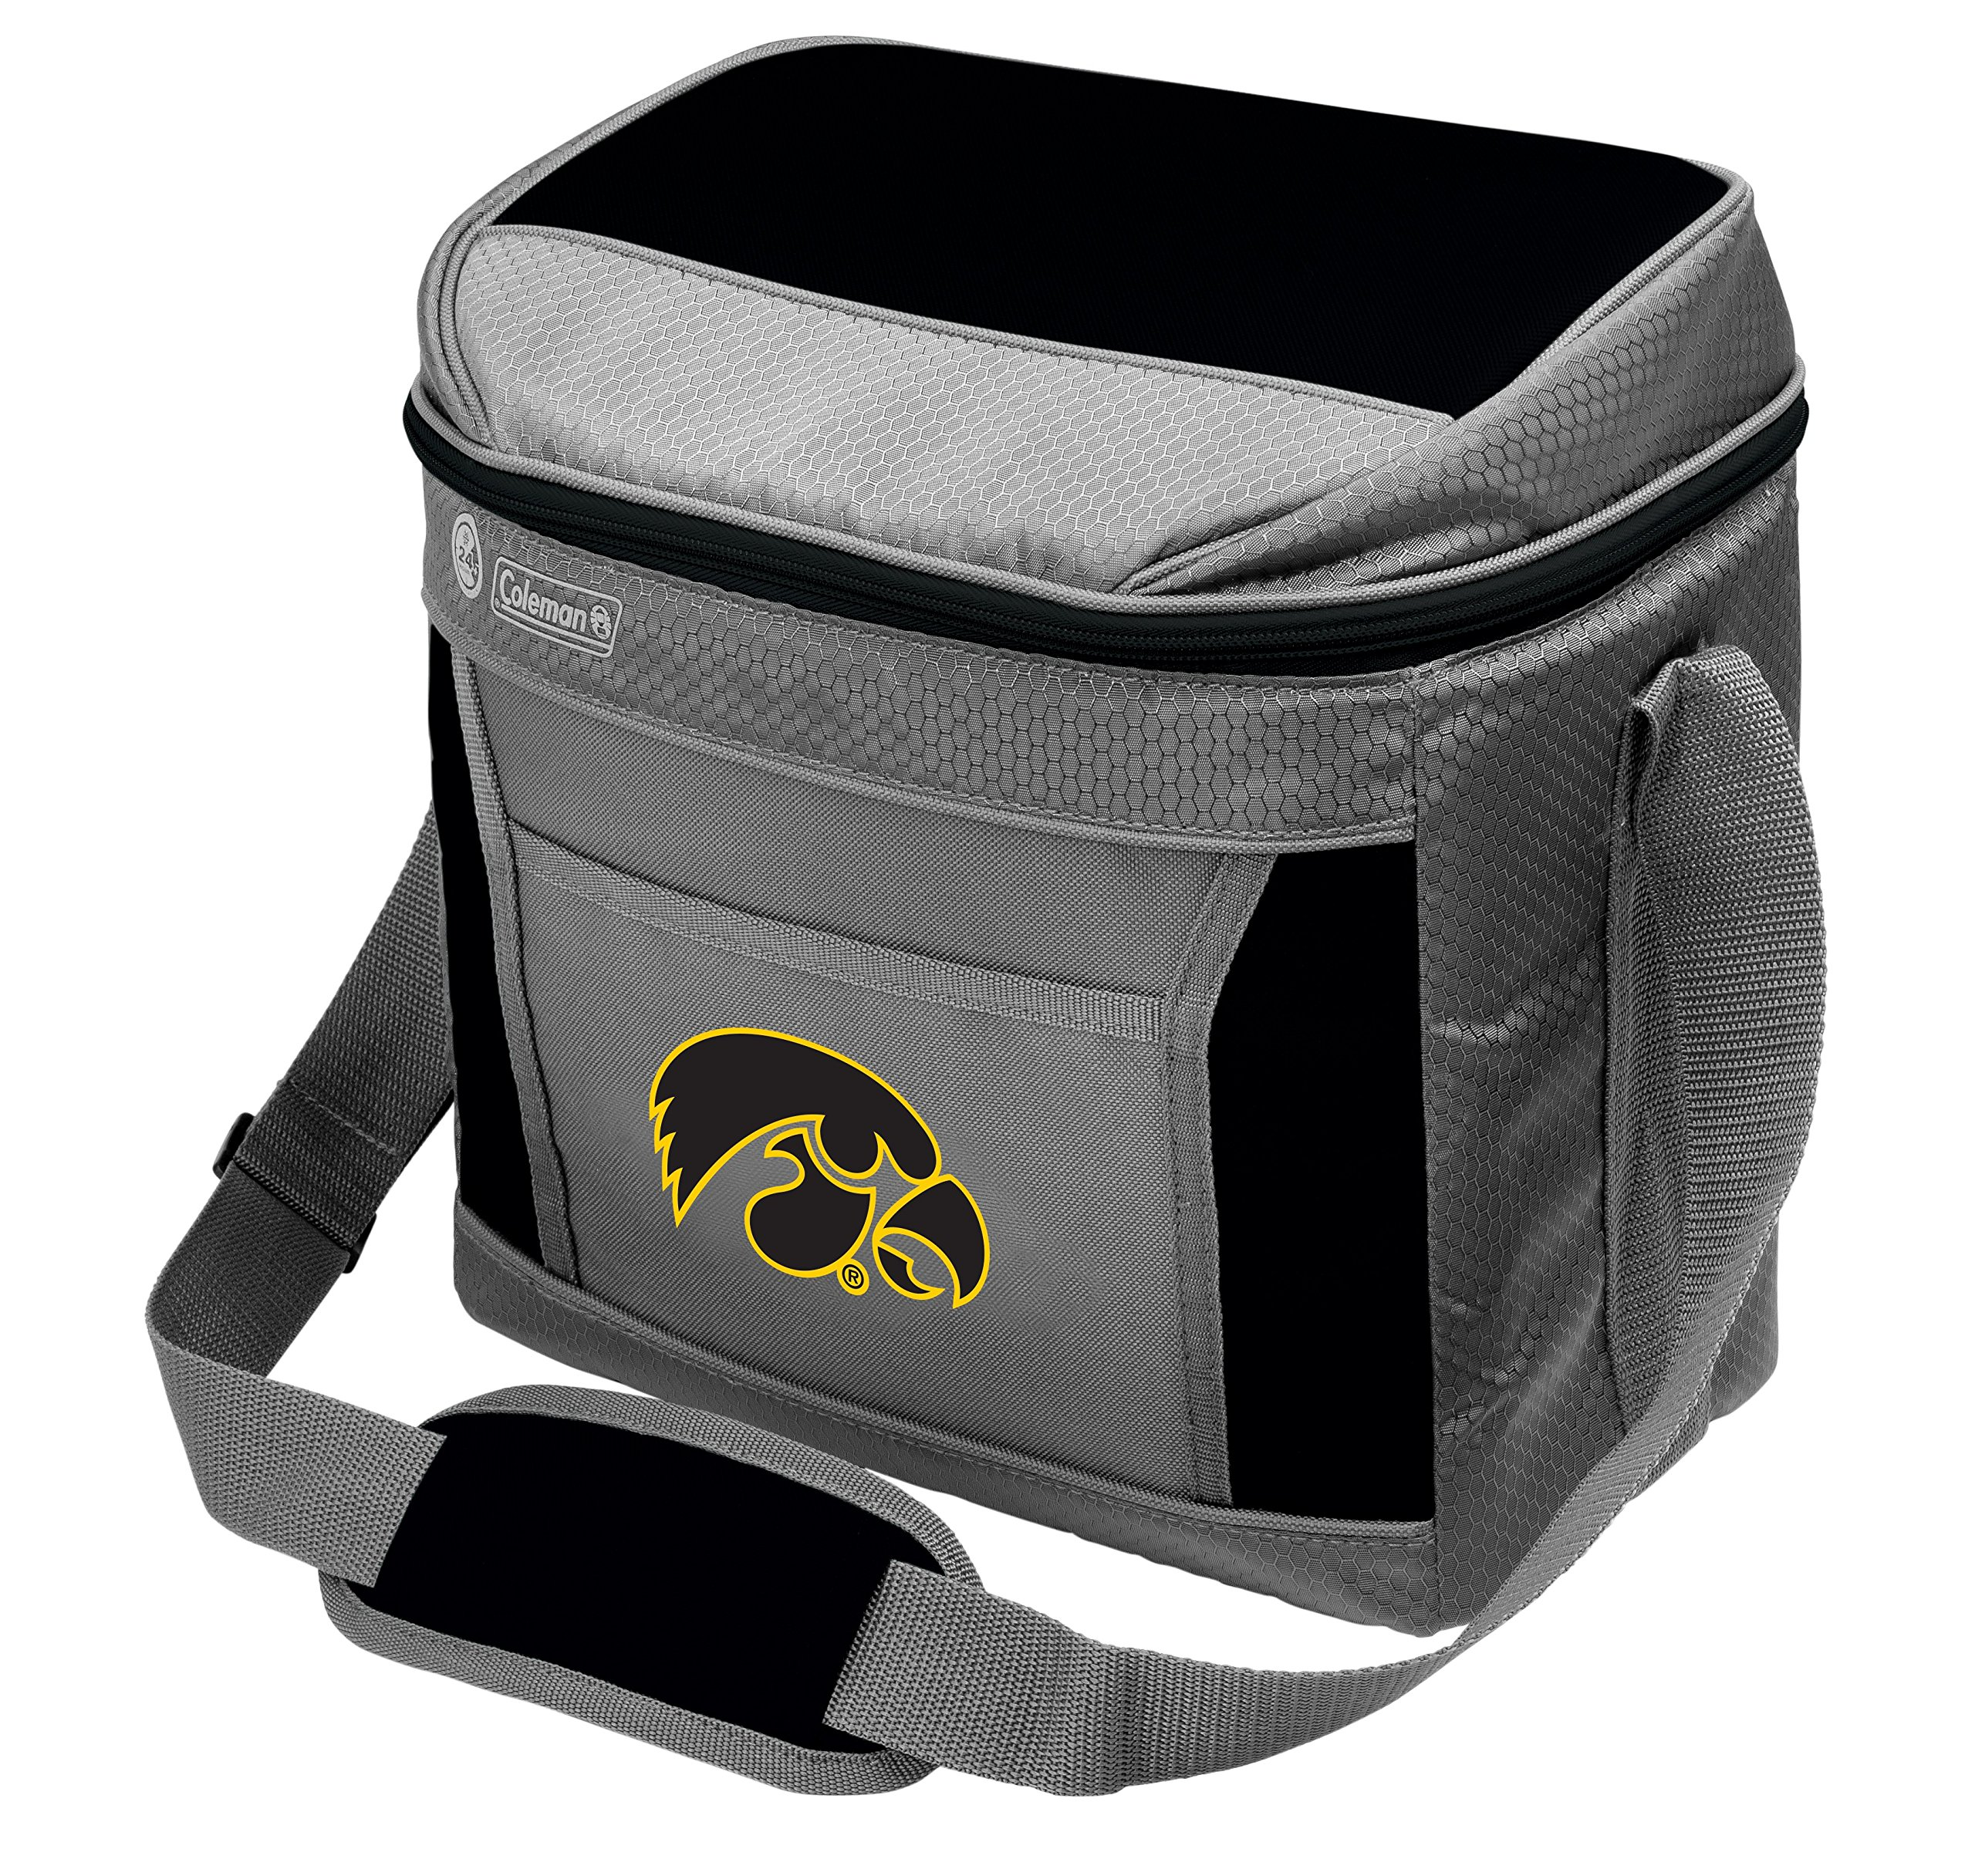 Coleman NCAA Soft-Sided Insulated Cooler Bag, 16-Can Capacity, University of Iowa Hawkeyes